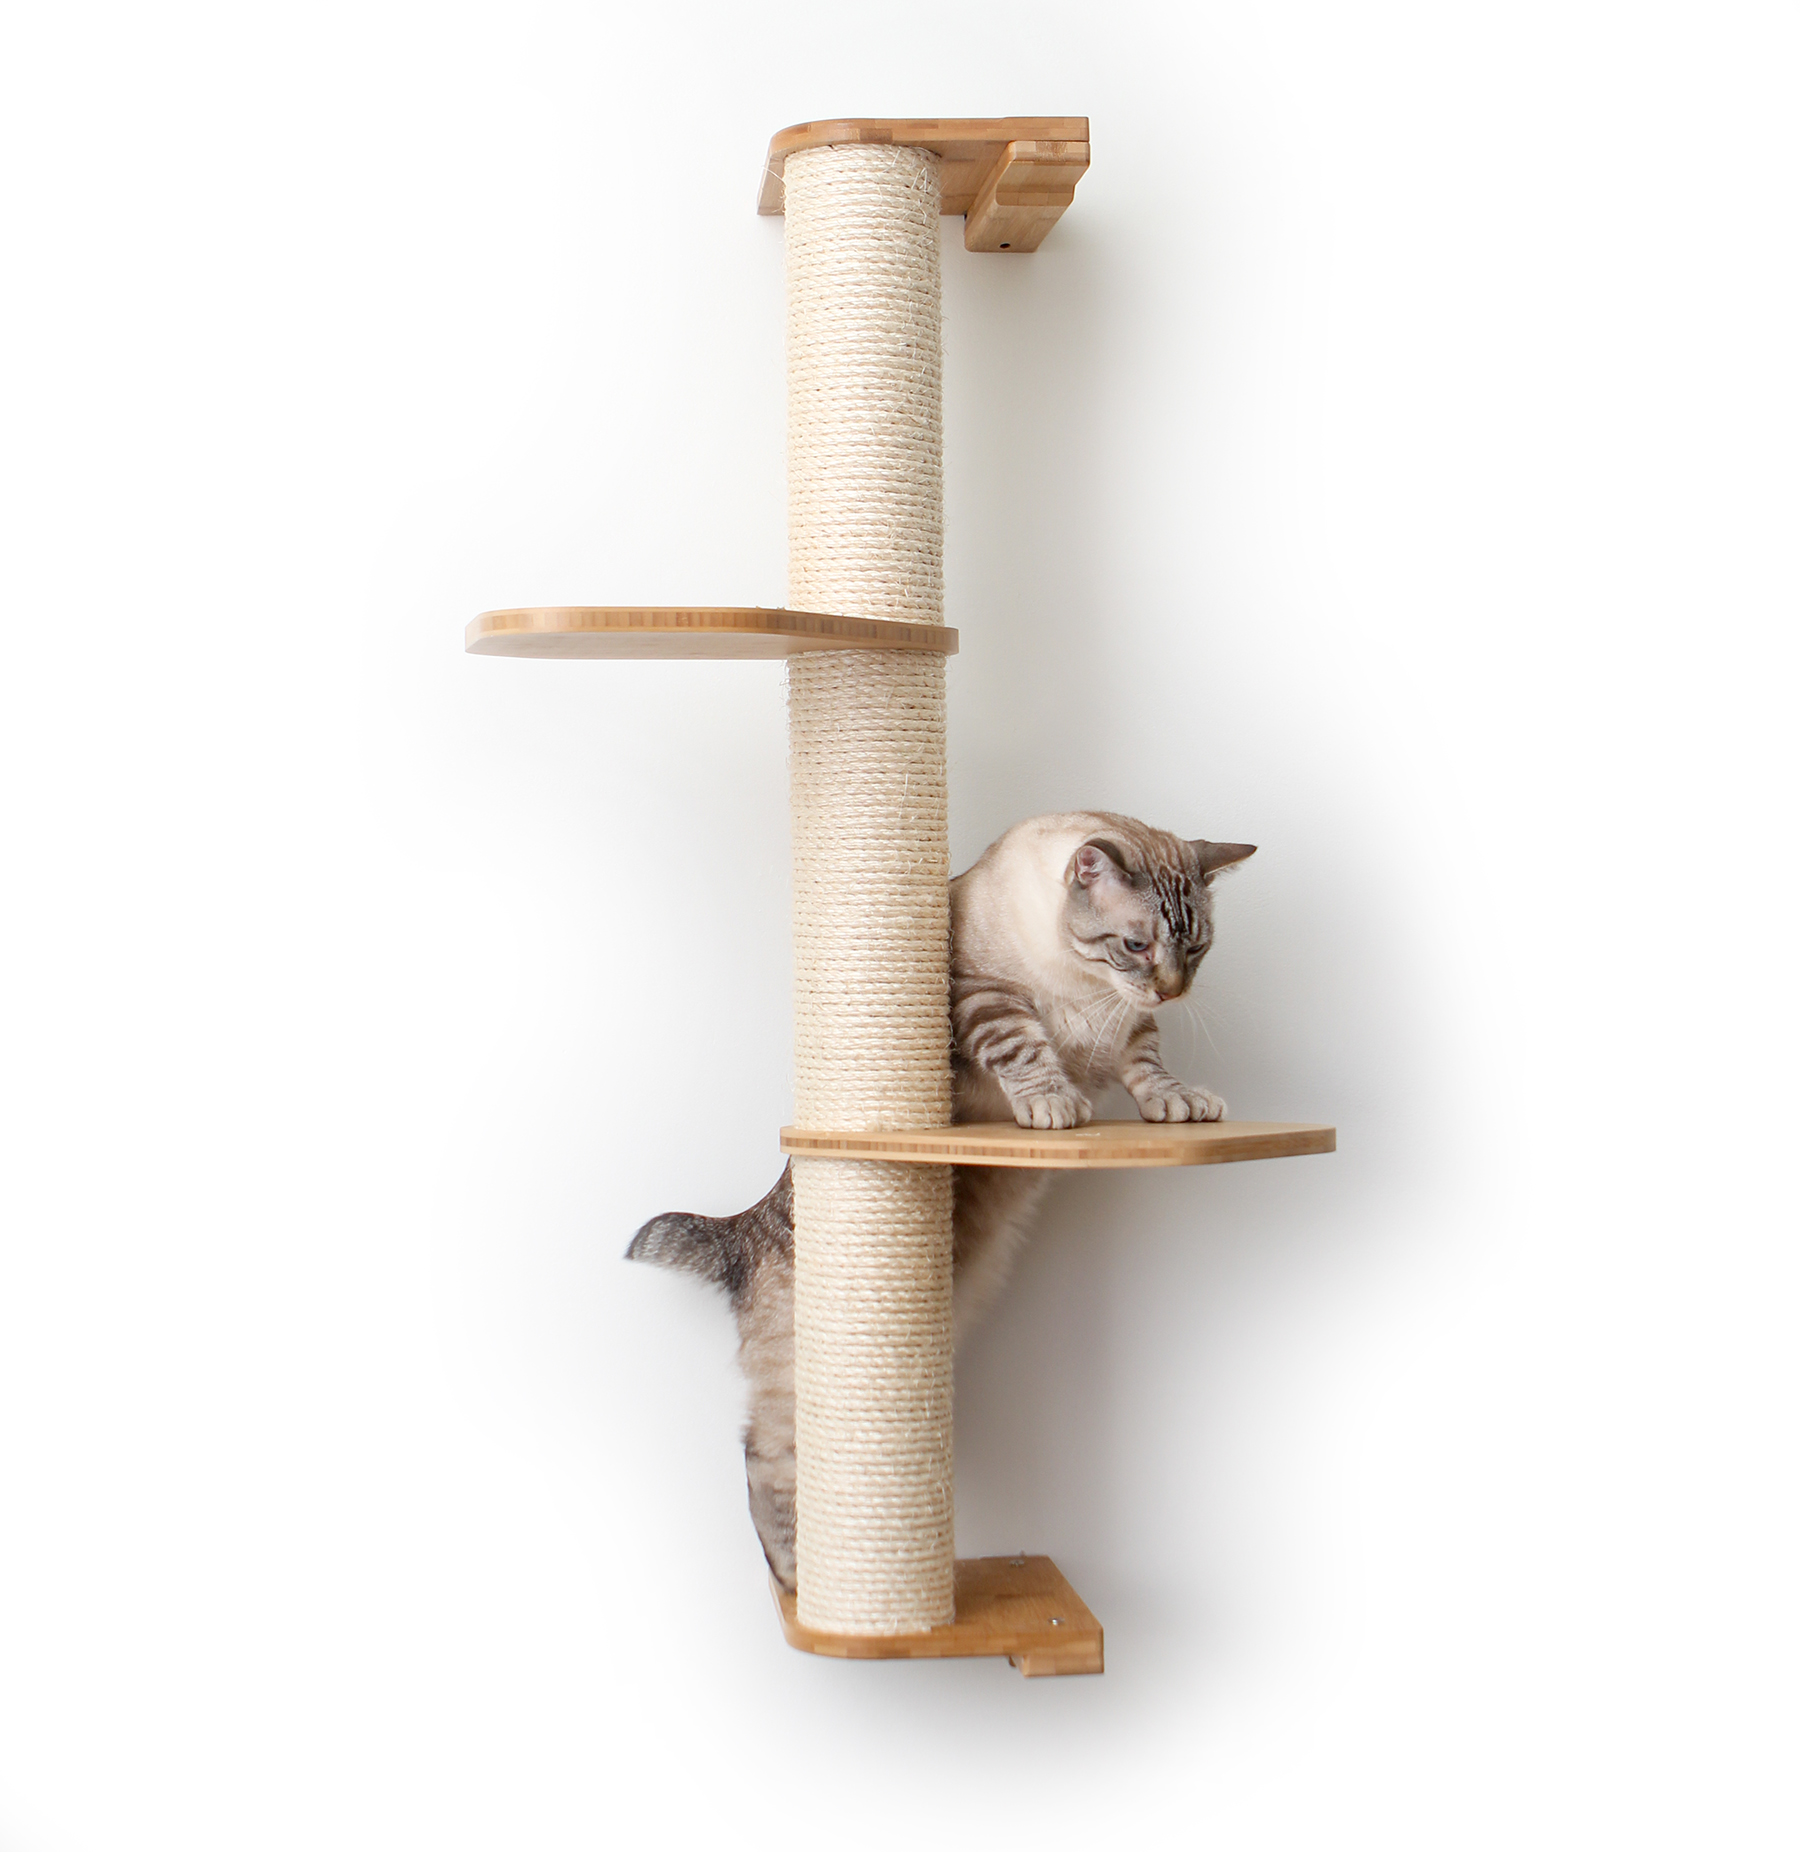 This photo displays our cat climbing a three tier Sisal Pole that has two additional Leaf Connectors. The Sisal Pole and Leaf Connectors shown are in Natural, a light brown stain.